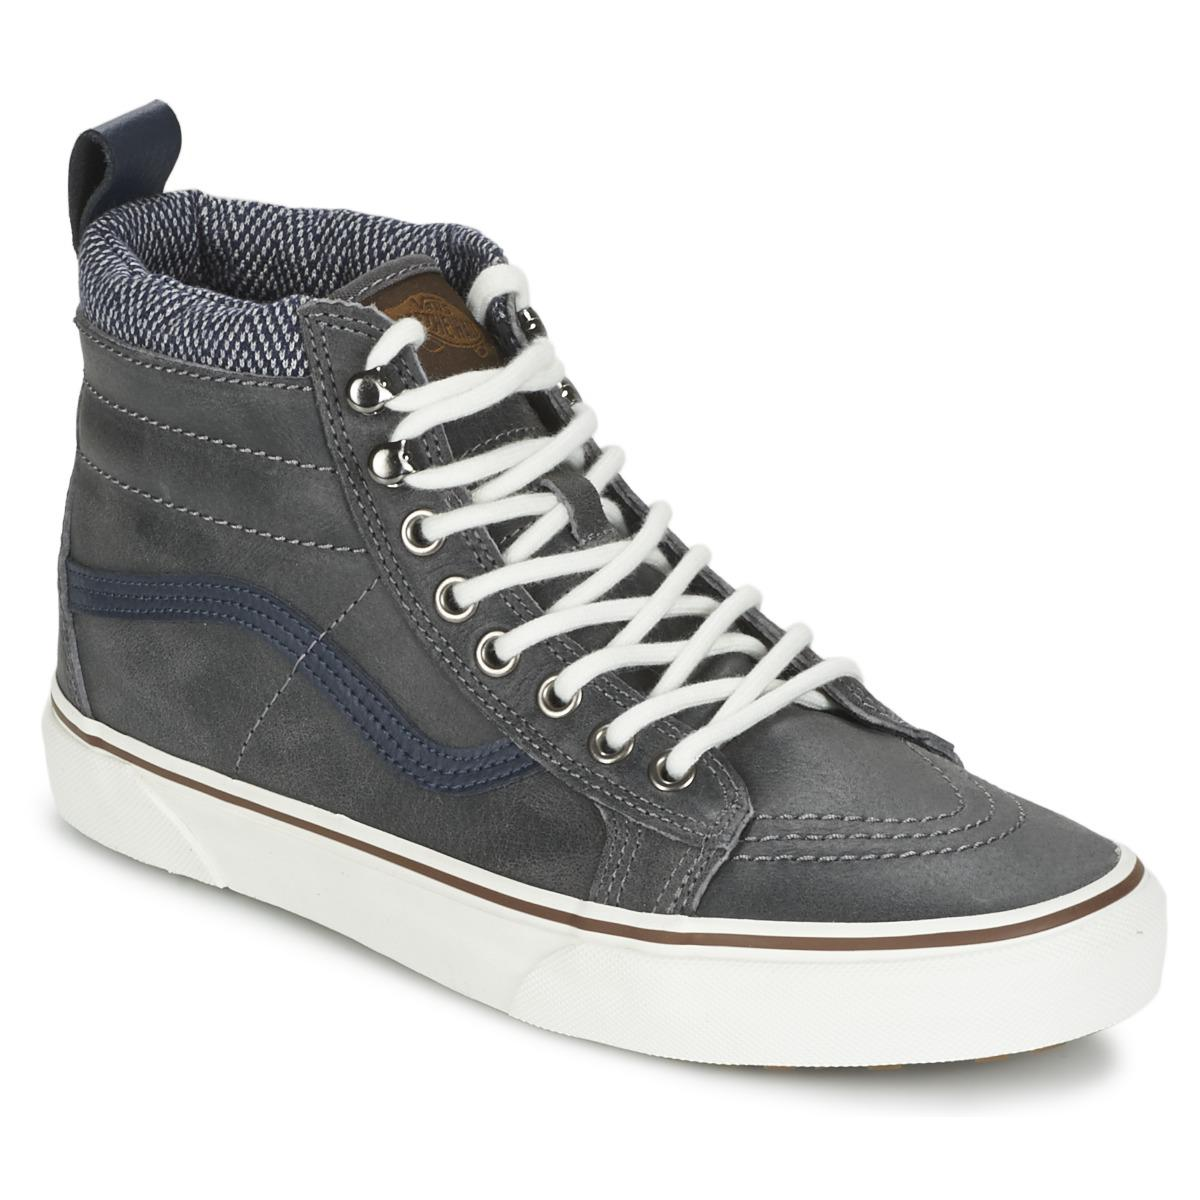 c4b3dce3ae7ed2 Vans Sk8-hi Mte Shoes (high-top Trainers) in Gray - Lyst